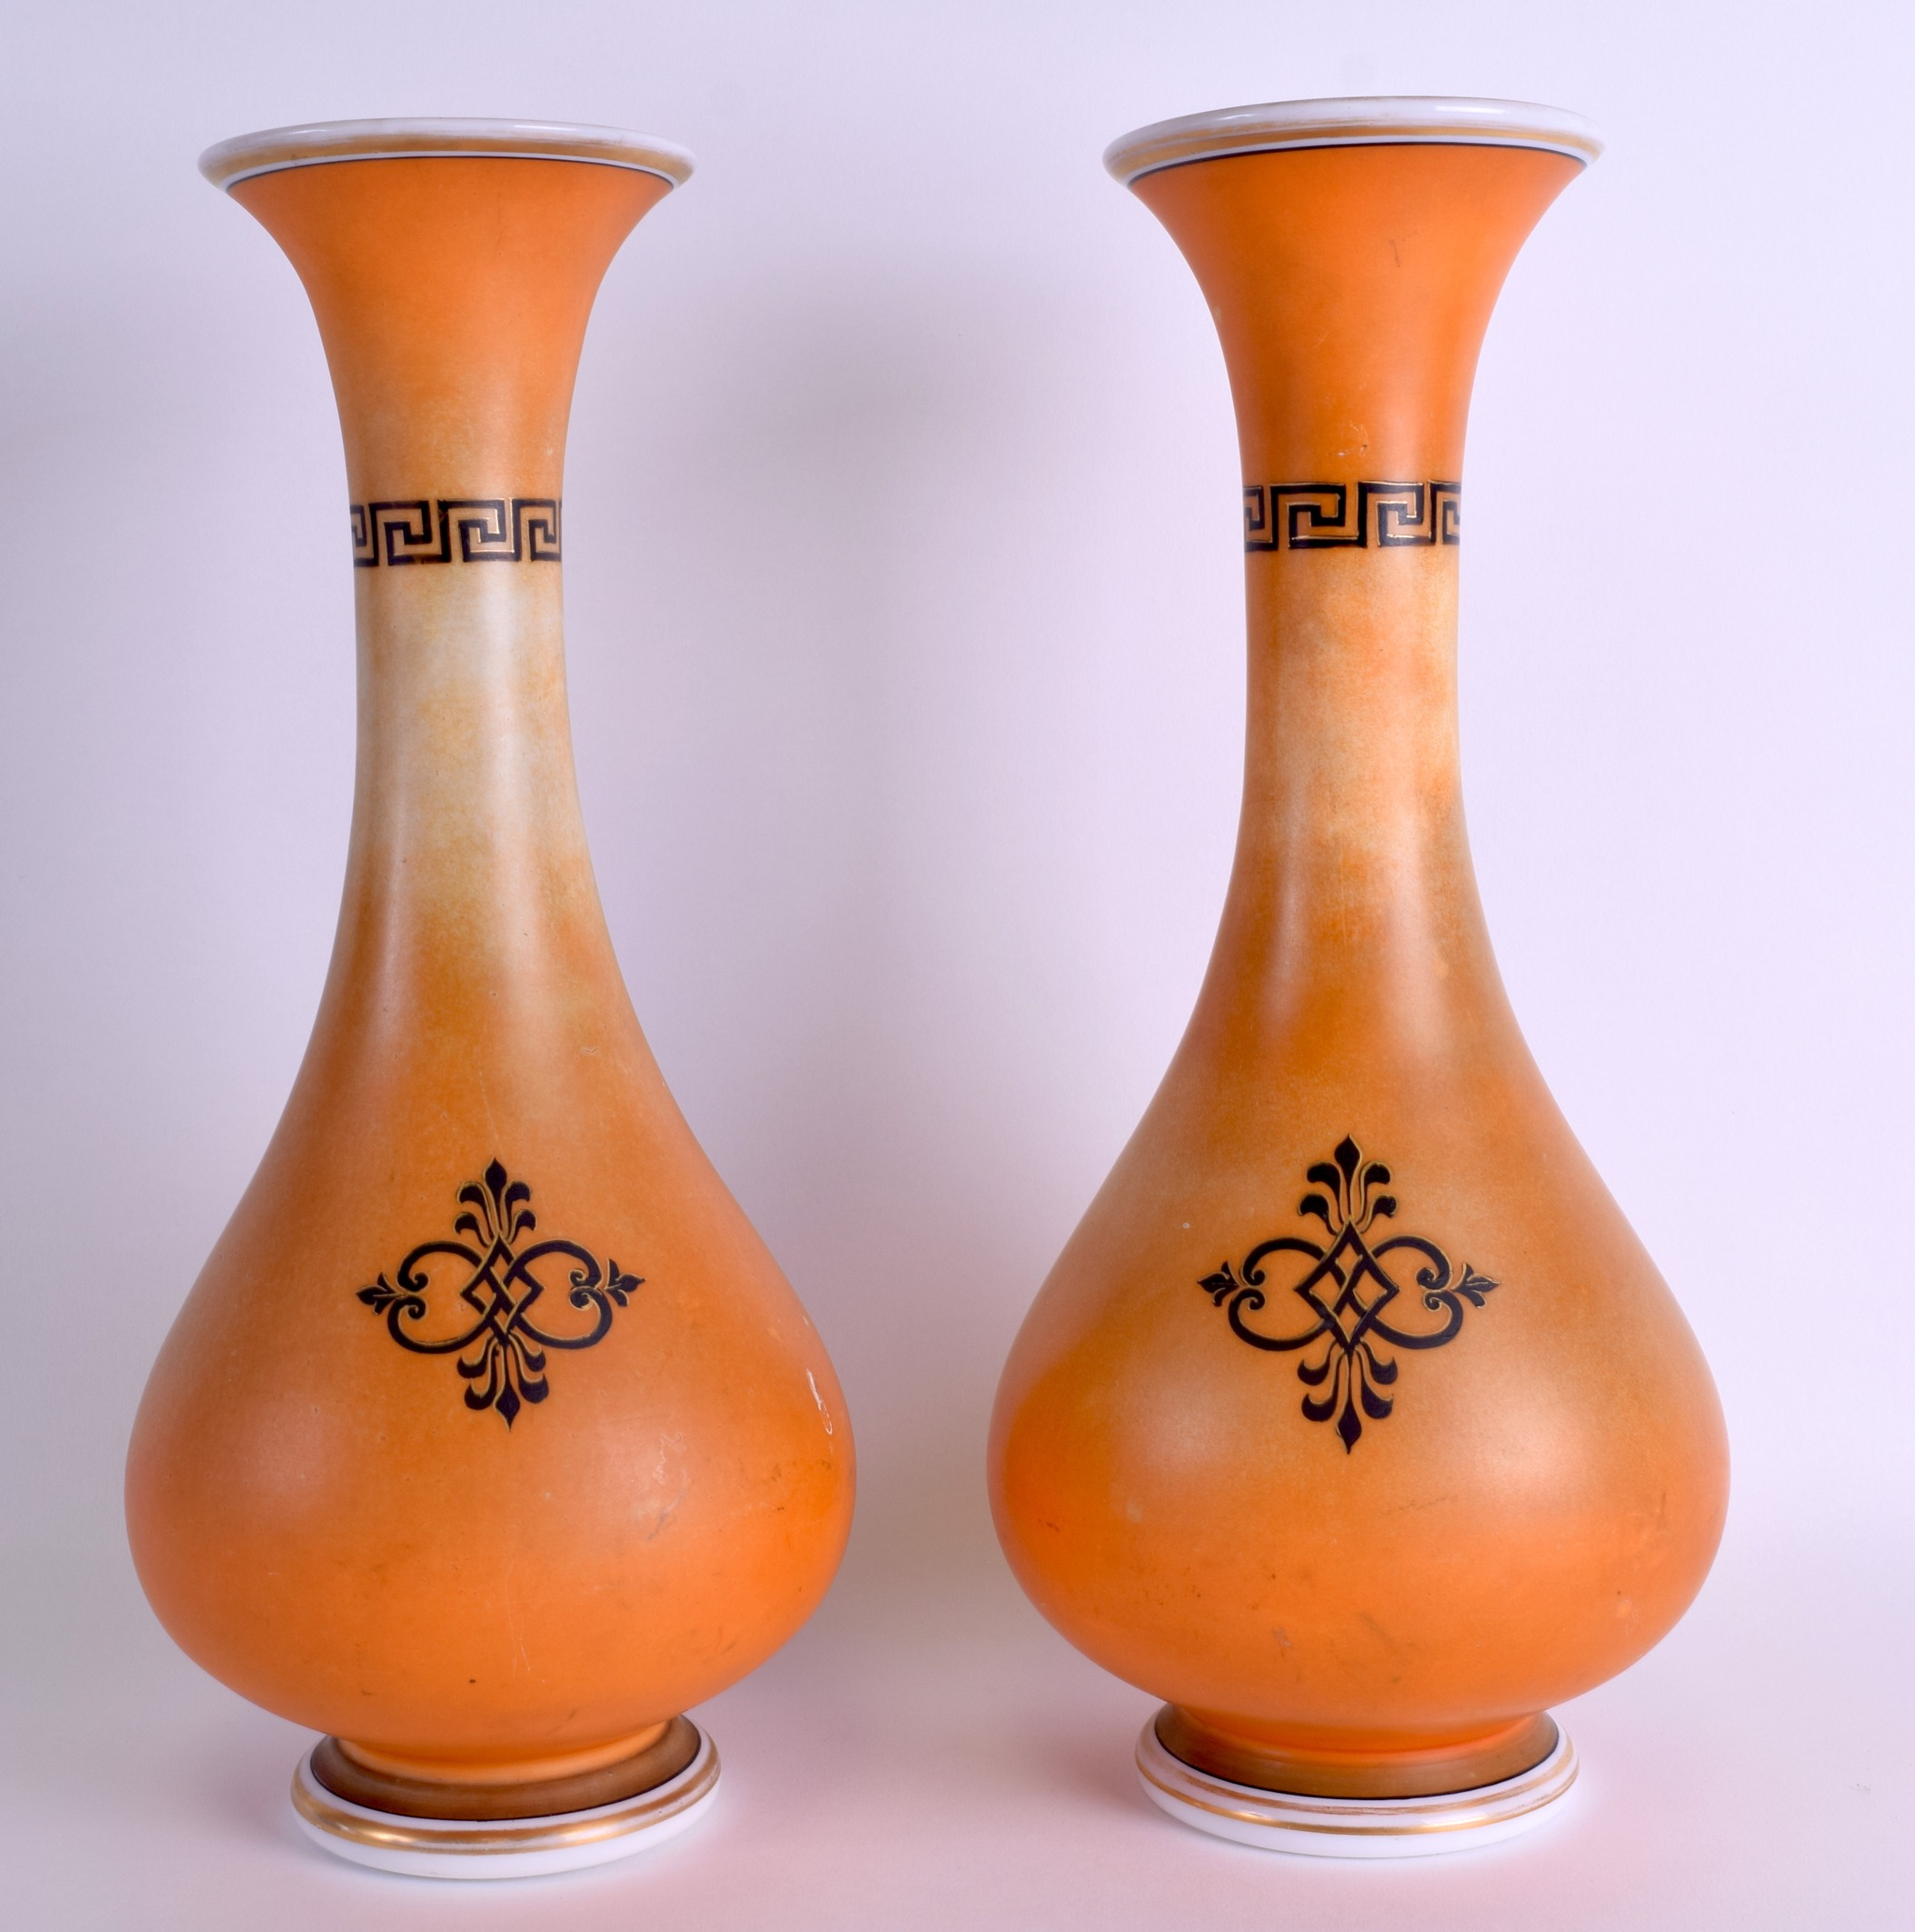 Lot 26 - A PAIR OF LATE 19TH CENTURY CONTINENTAL OPALINE GLASS VASES decorated with Roman portraits. 35 cm